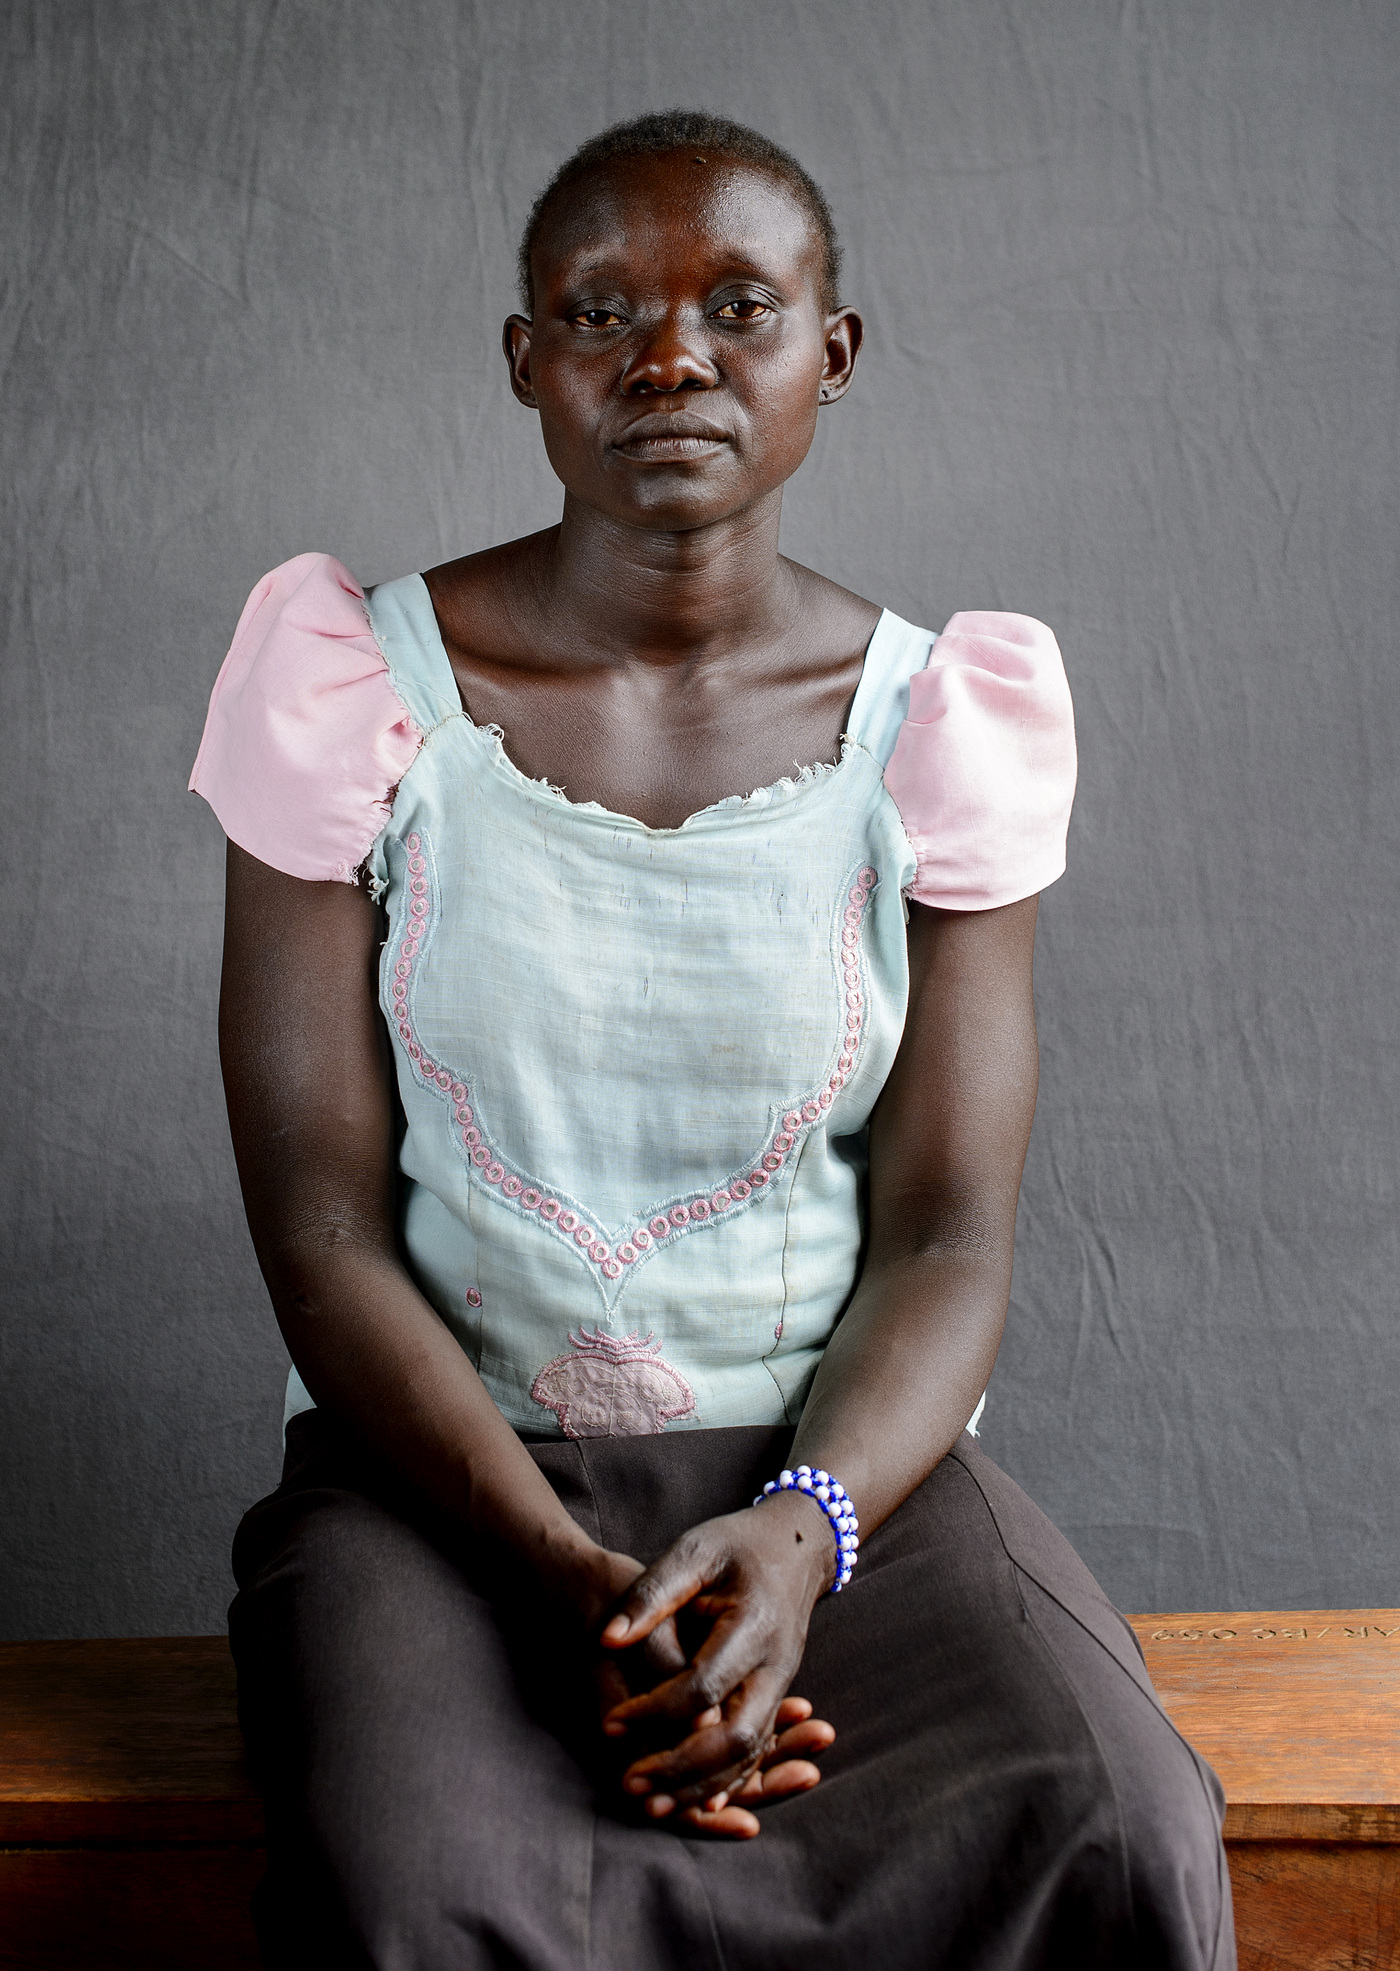 John T. Pedersen Photography - Jane Tabu (26)   My husband was taken in our home at night.     Later I heard that he had been slaughtered      I dont want to return to South Sudan, but to get a safe life here in Uganda.   Jane walked seven days with her two children from the village of Yei.